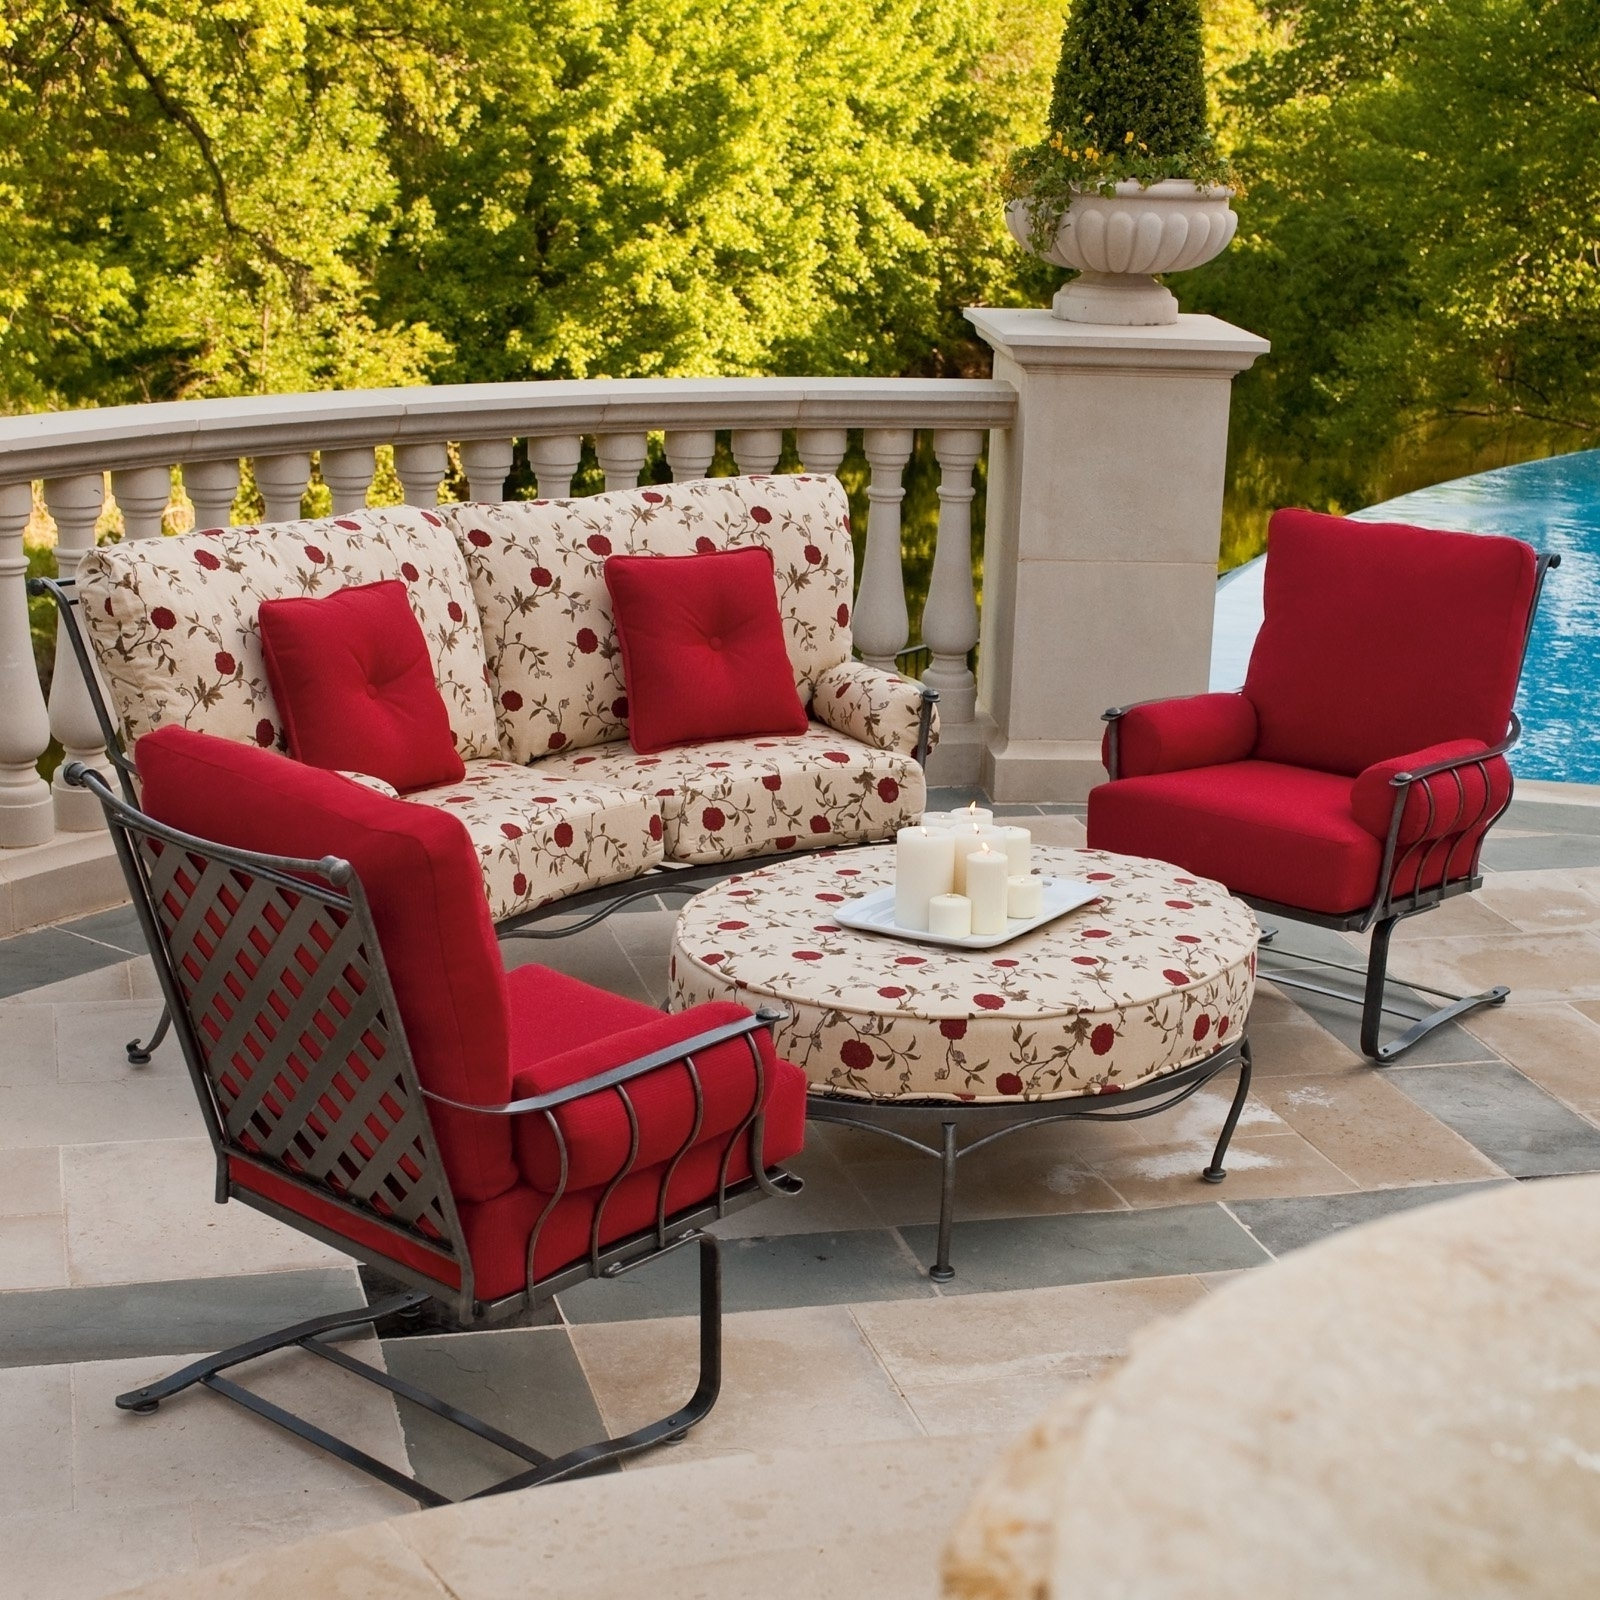 Target Patio Furniture Conversation Sets For Most Popular 56 Conversation Patio Sets Target Patio Conversation Sets With Patio (View 13 of 20)